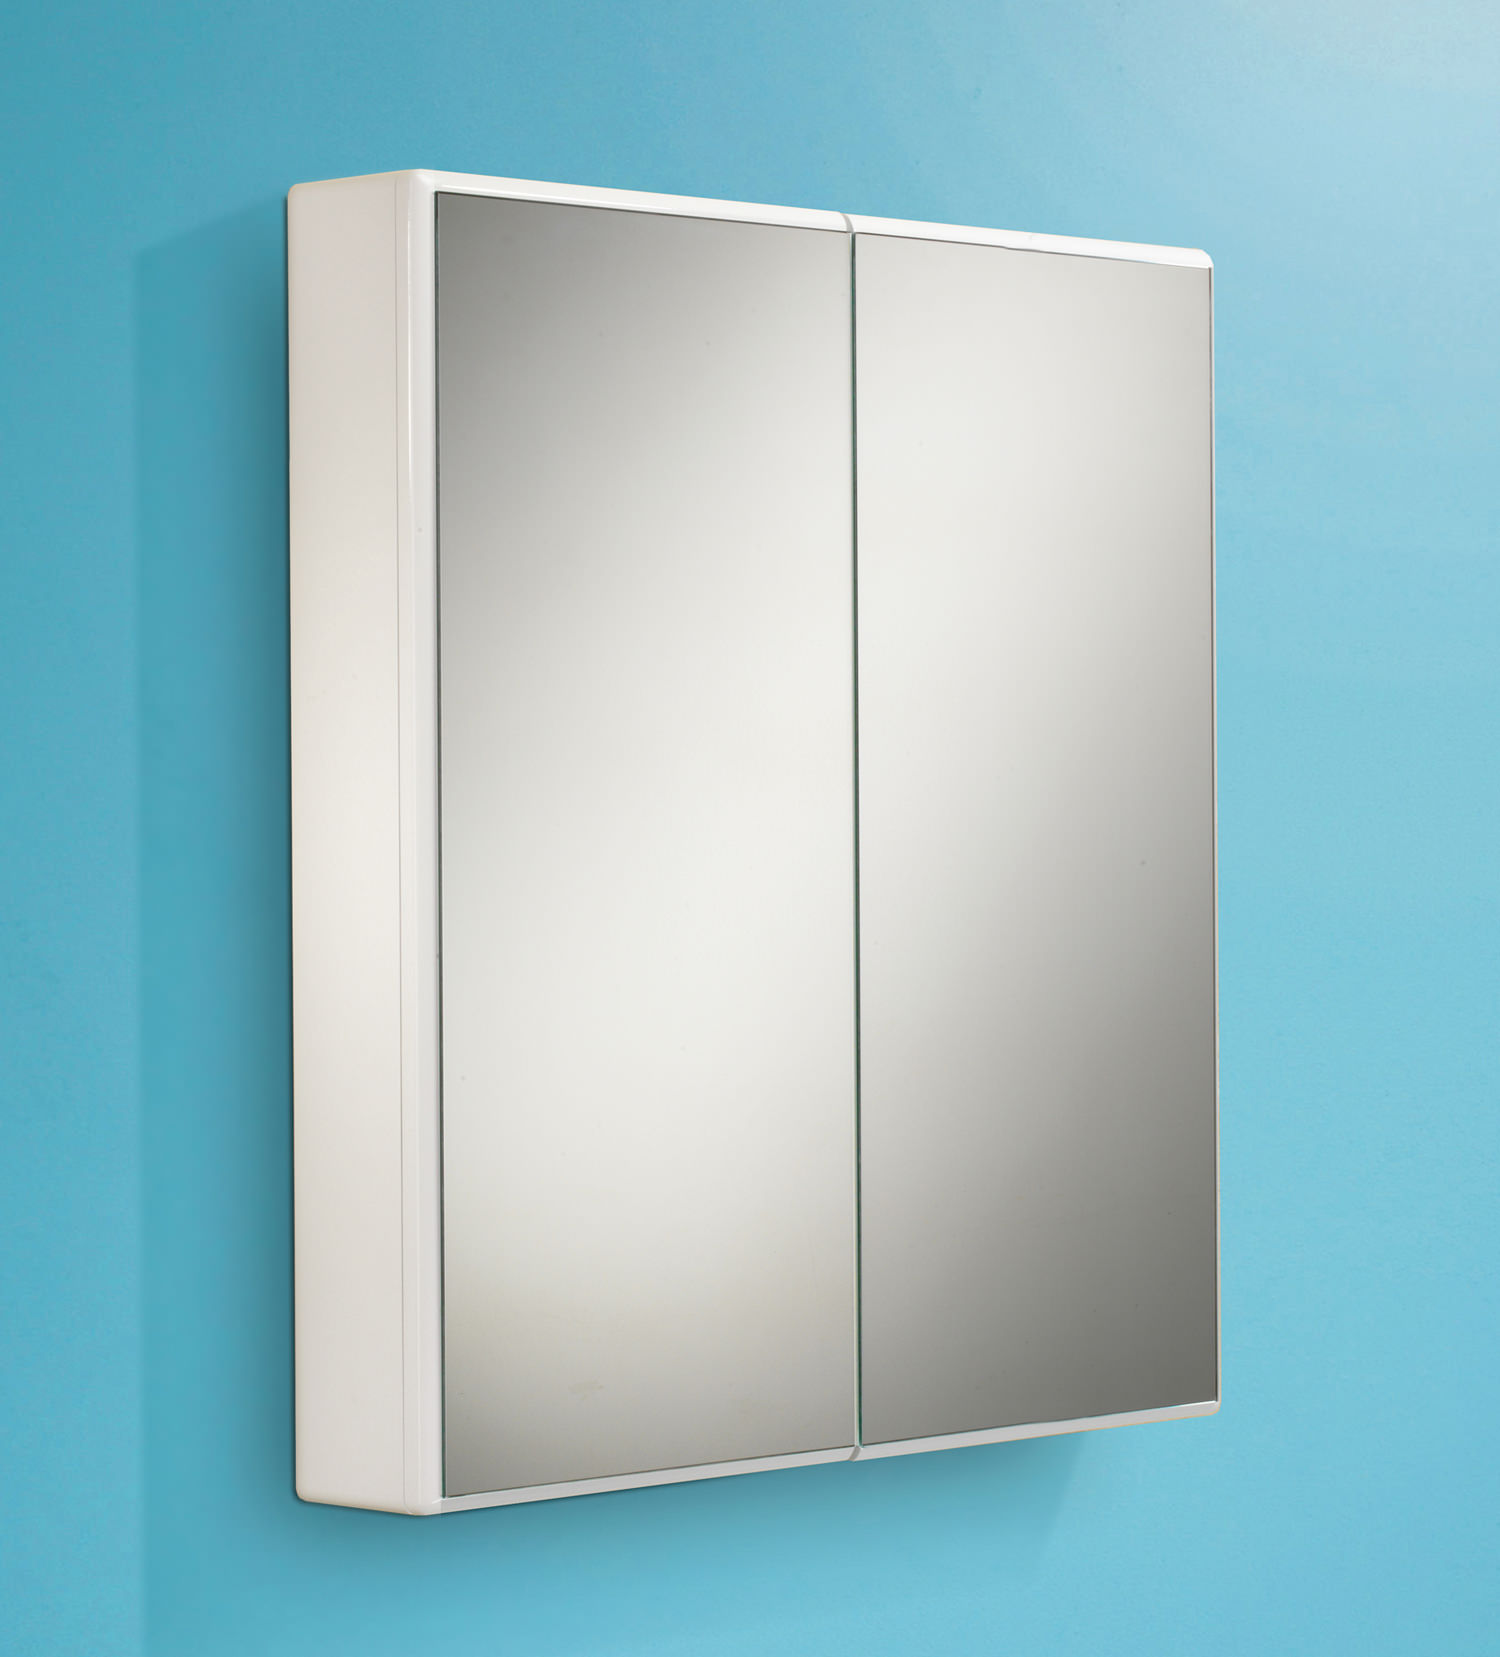 Hib jersey slimline double door mirrored cabinet 650 x for Slim mirrored bathroom cabinet